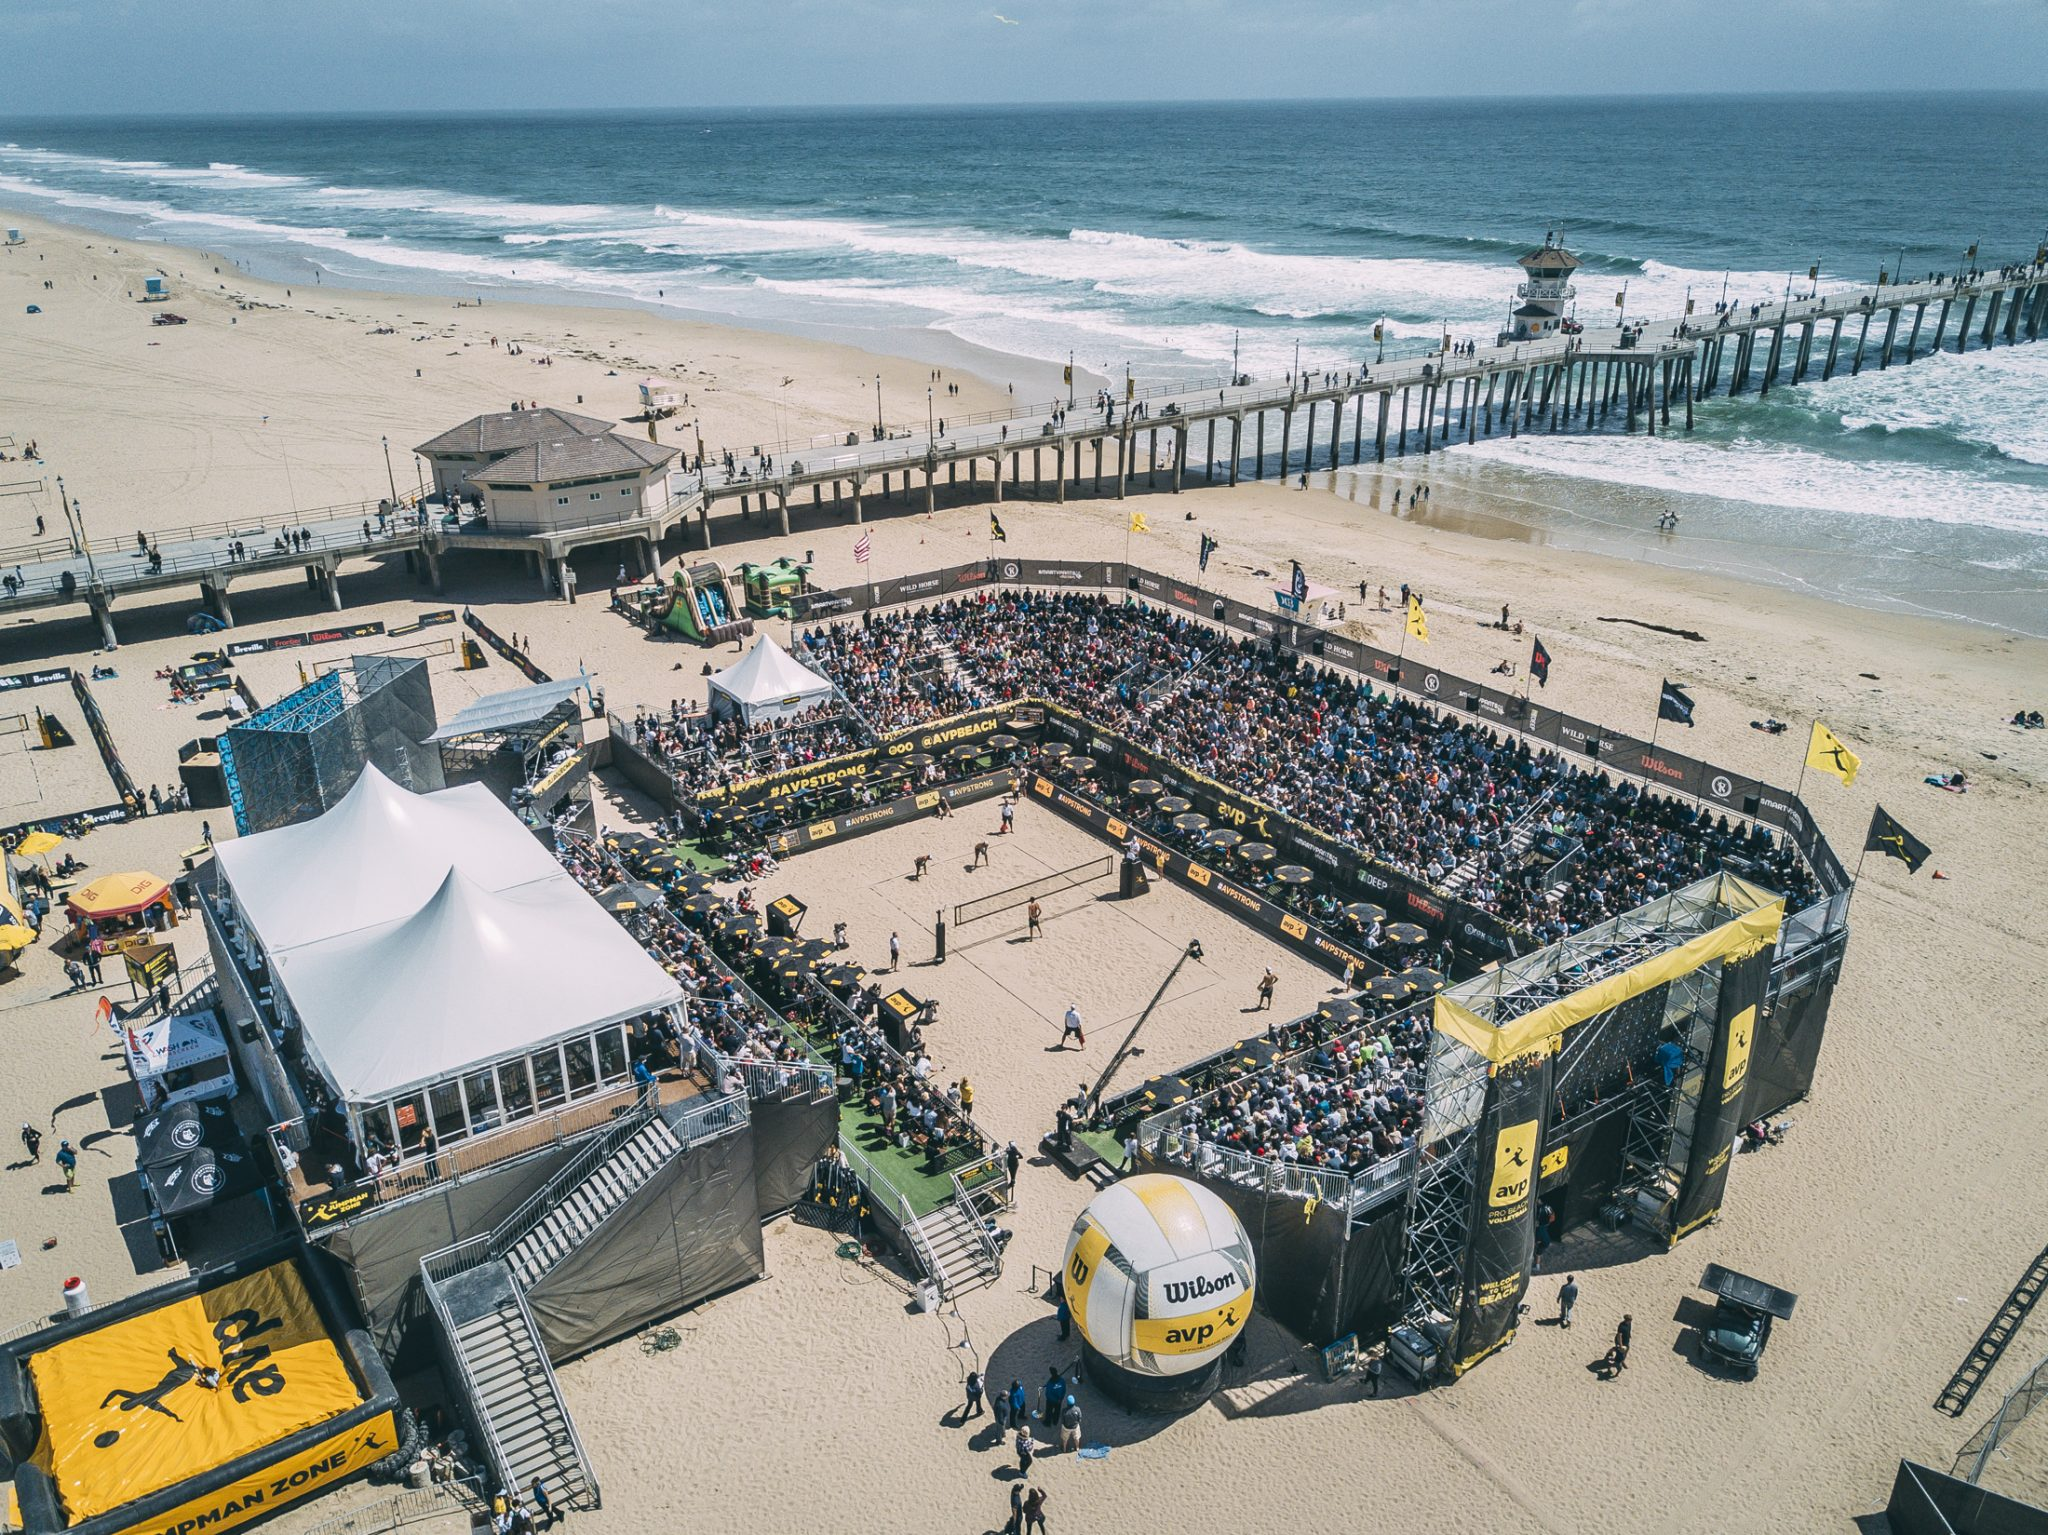 Drone Images of the AVP Huntington Beach Open 2017 by Joshua Glazebrook